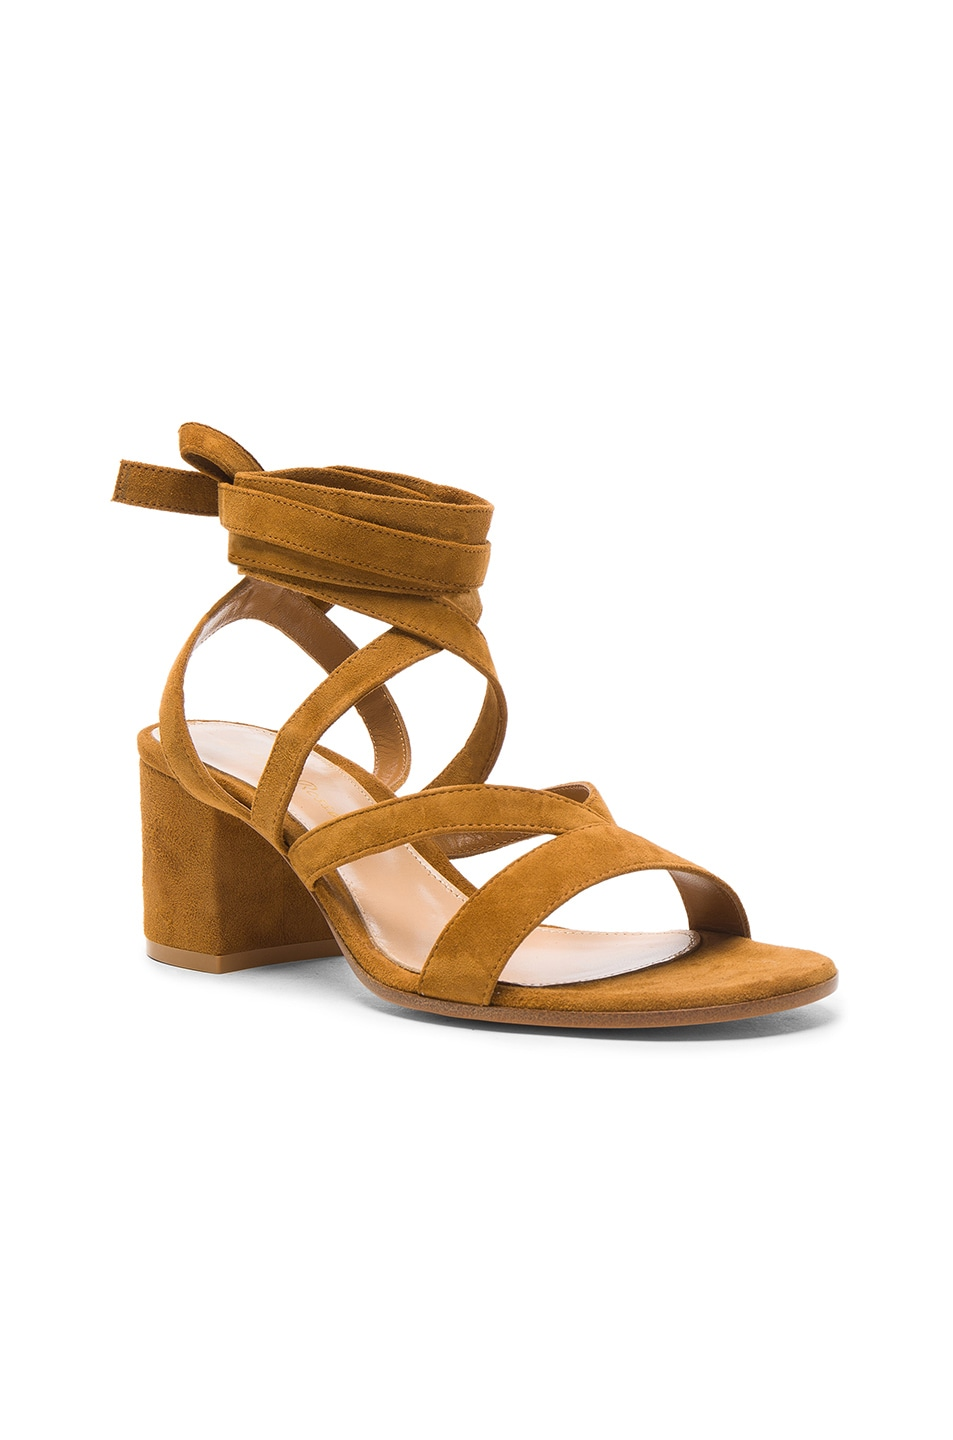 Image 2 of Gianvito Rossi Suede Janis Low Sandals in Almond